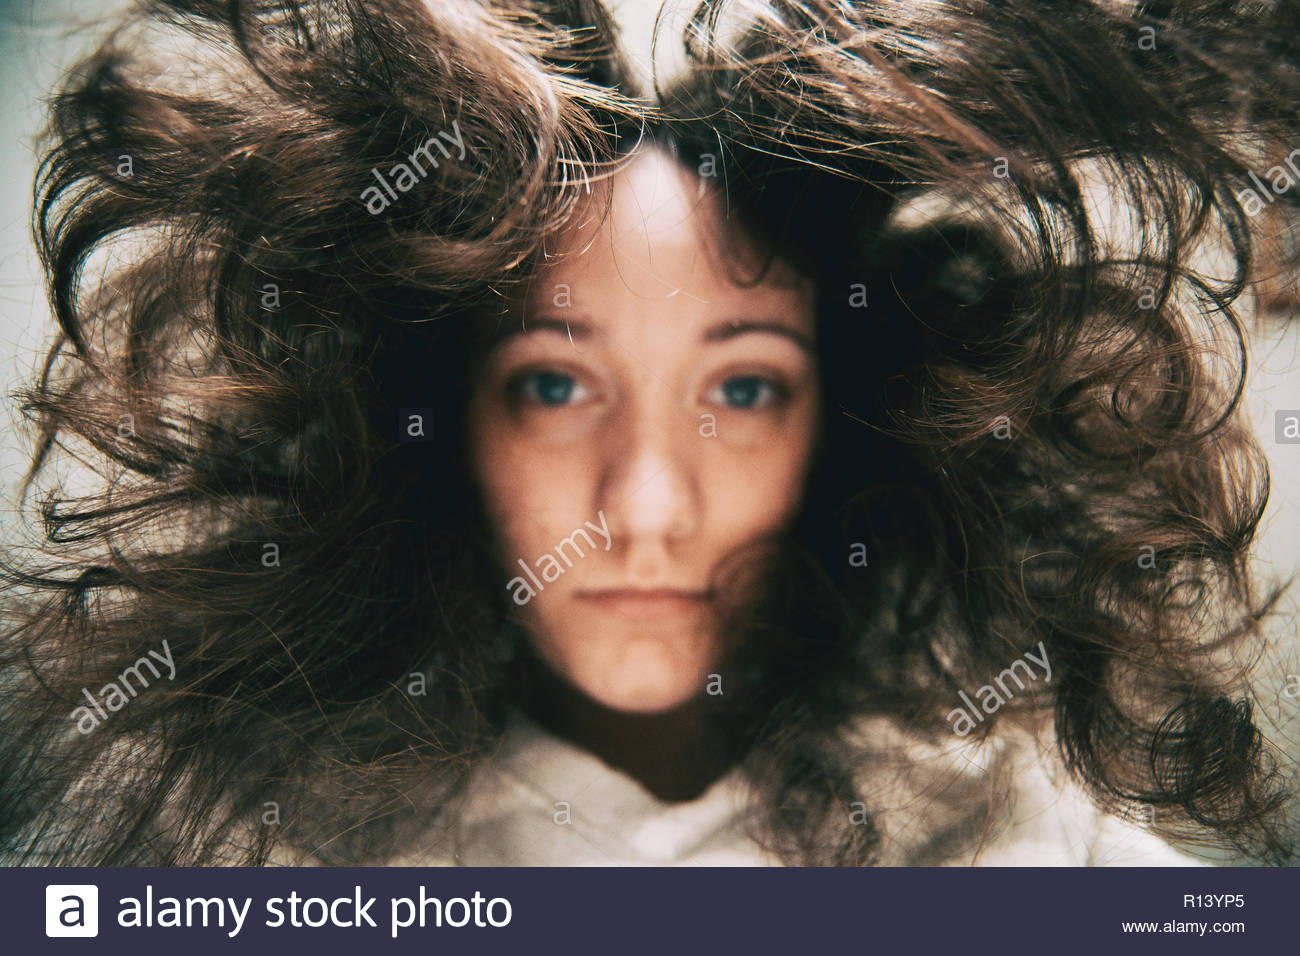 A woman looking into the camera under water - Stock Image